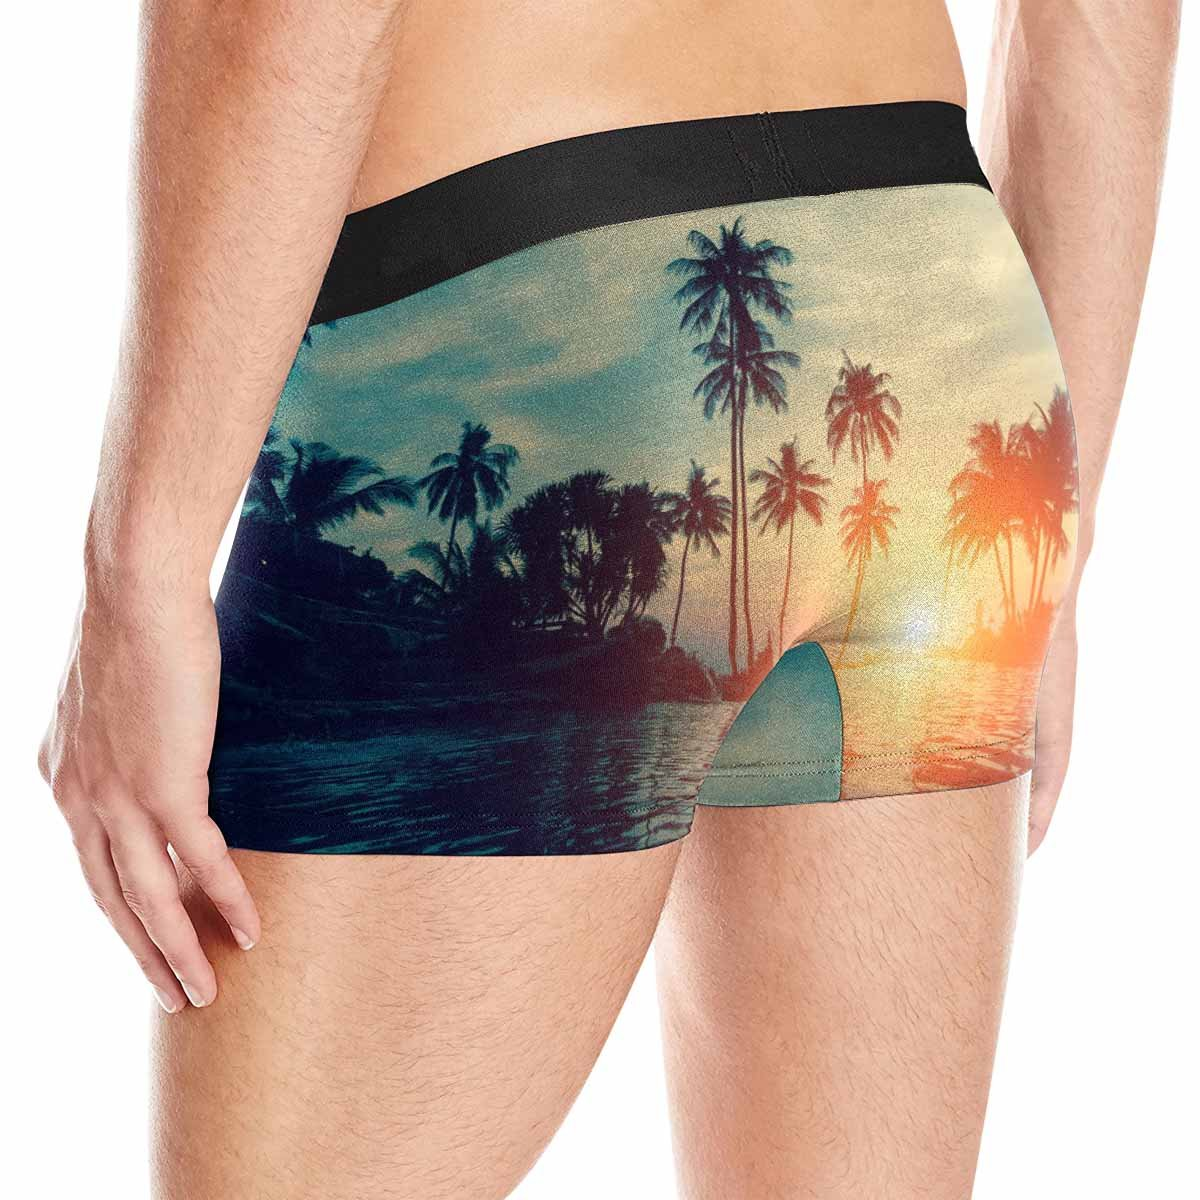 INTERESTPRINT Custom Mens All-Over Print Boxer Briefs Beautiful Tropical Beach with Palm Trees Silhouettes at Dusk XS-3XL